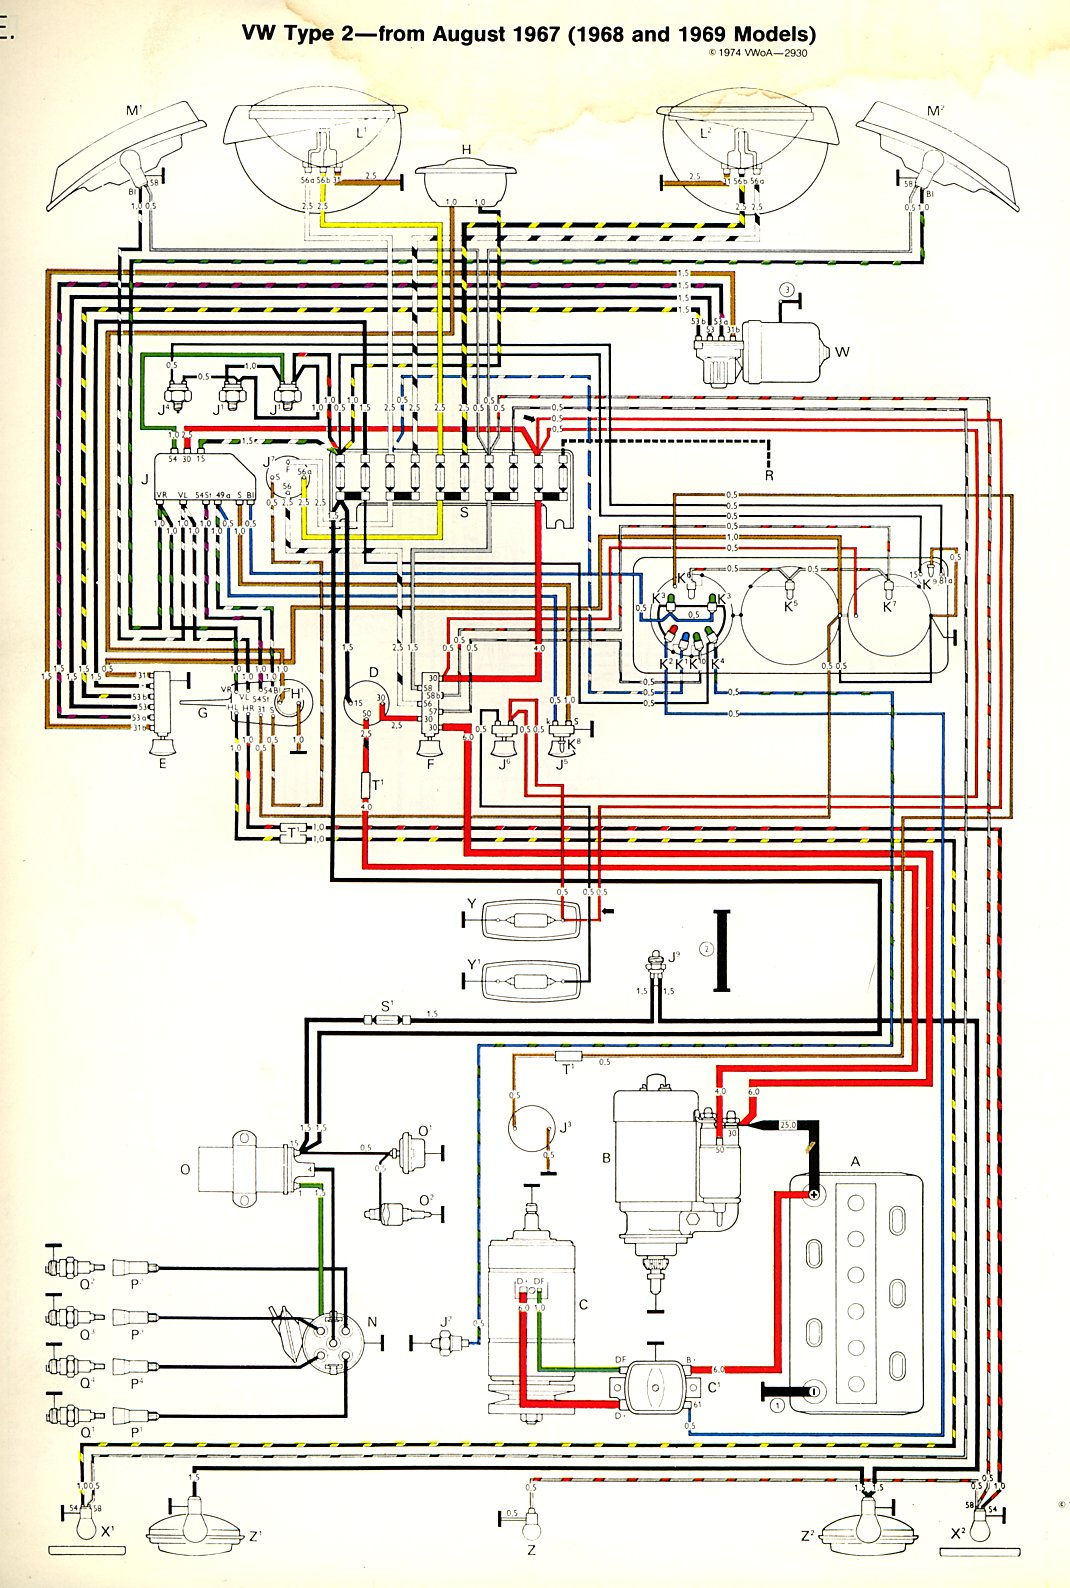 73 Wiring Diagrams Vw Samba New Media Of Wiring Diagram Online